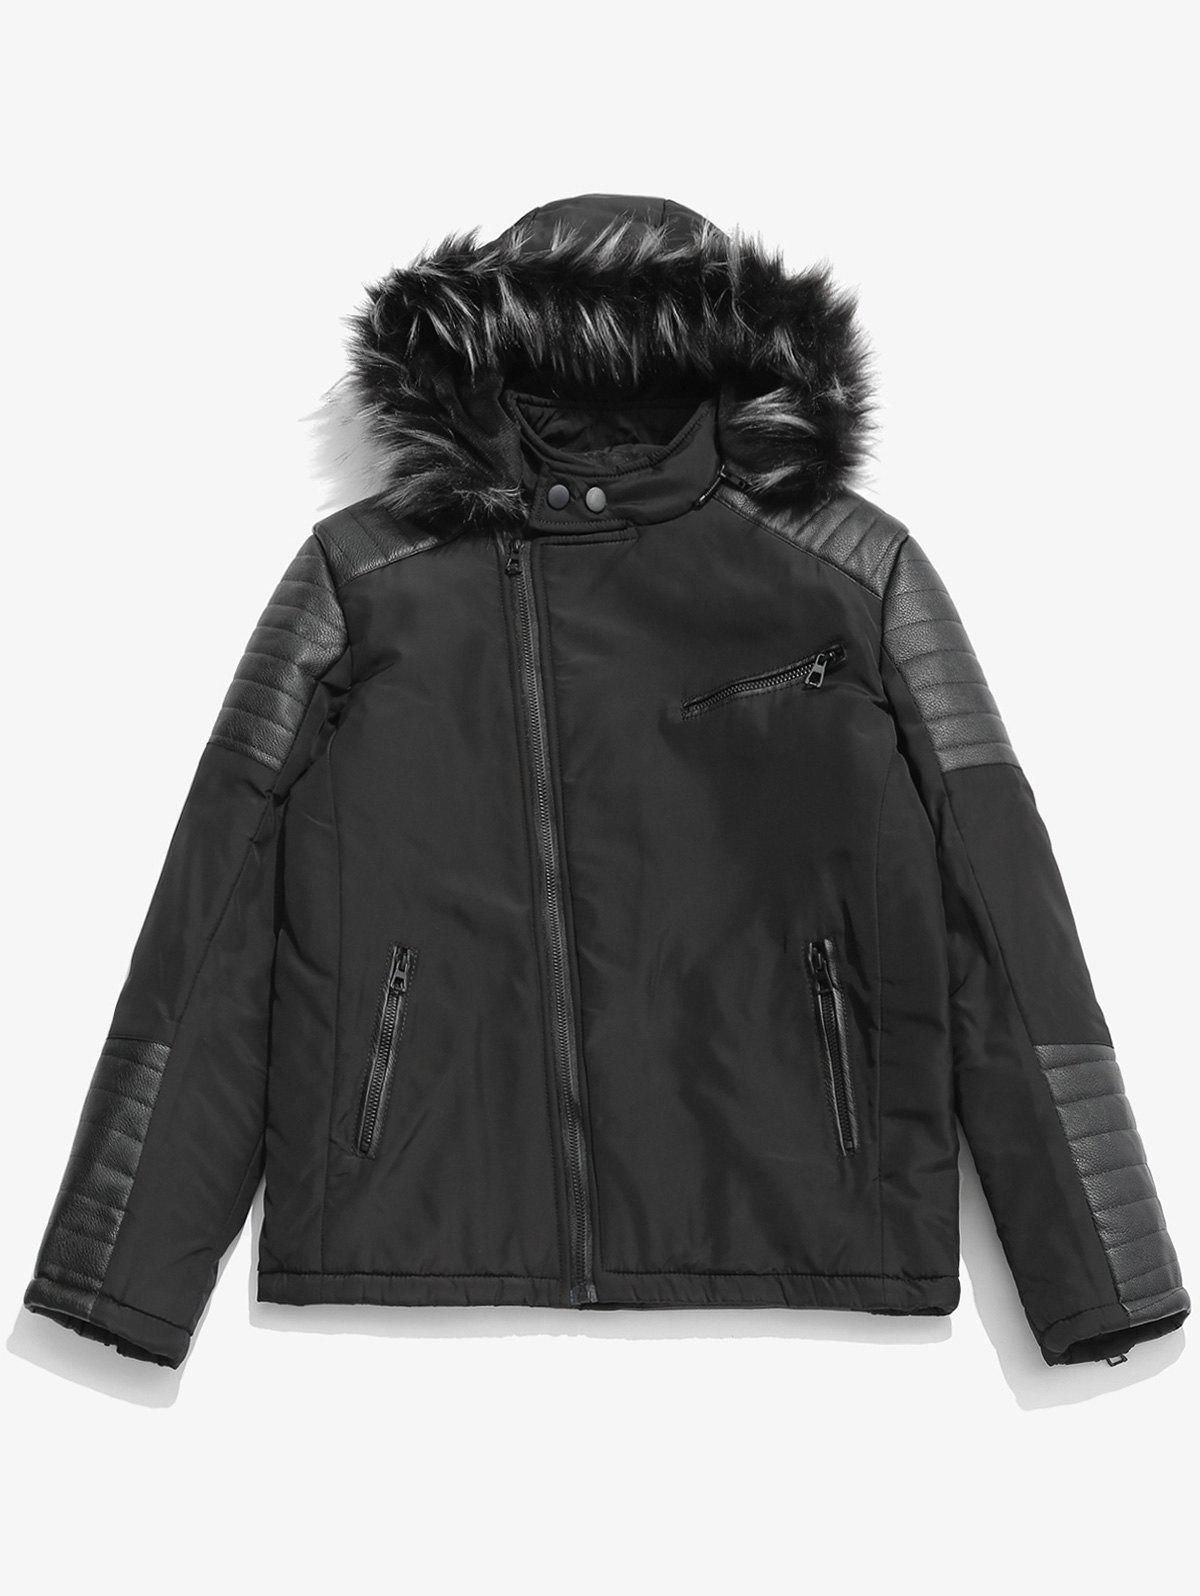 Unique Faux Fur Hoodie Zipper Patchwork Parka Coat